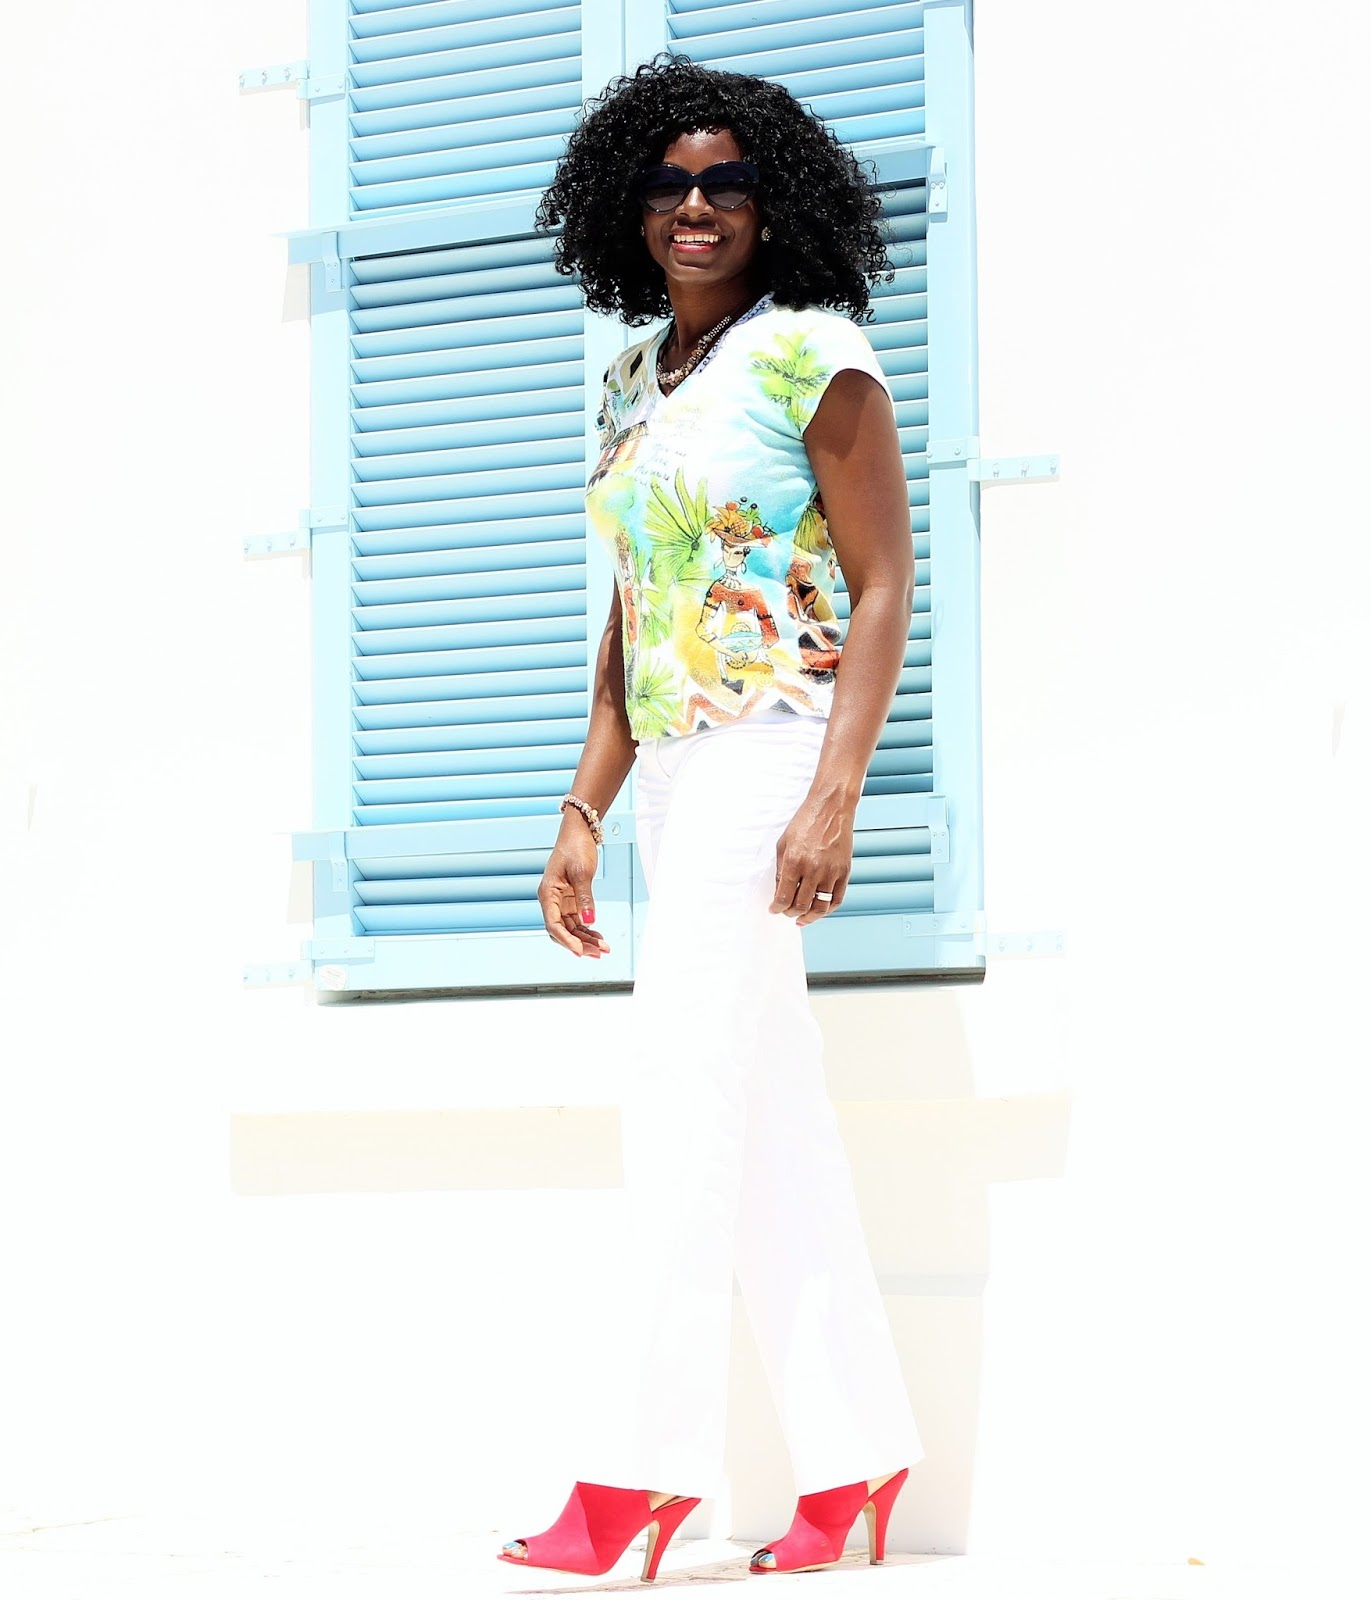 CASUAL FRIDAY: Printed T-Shirt with White Pants